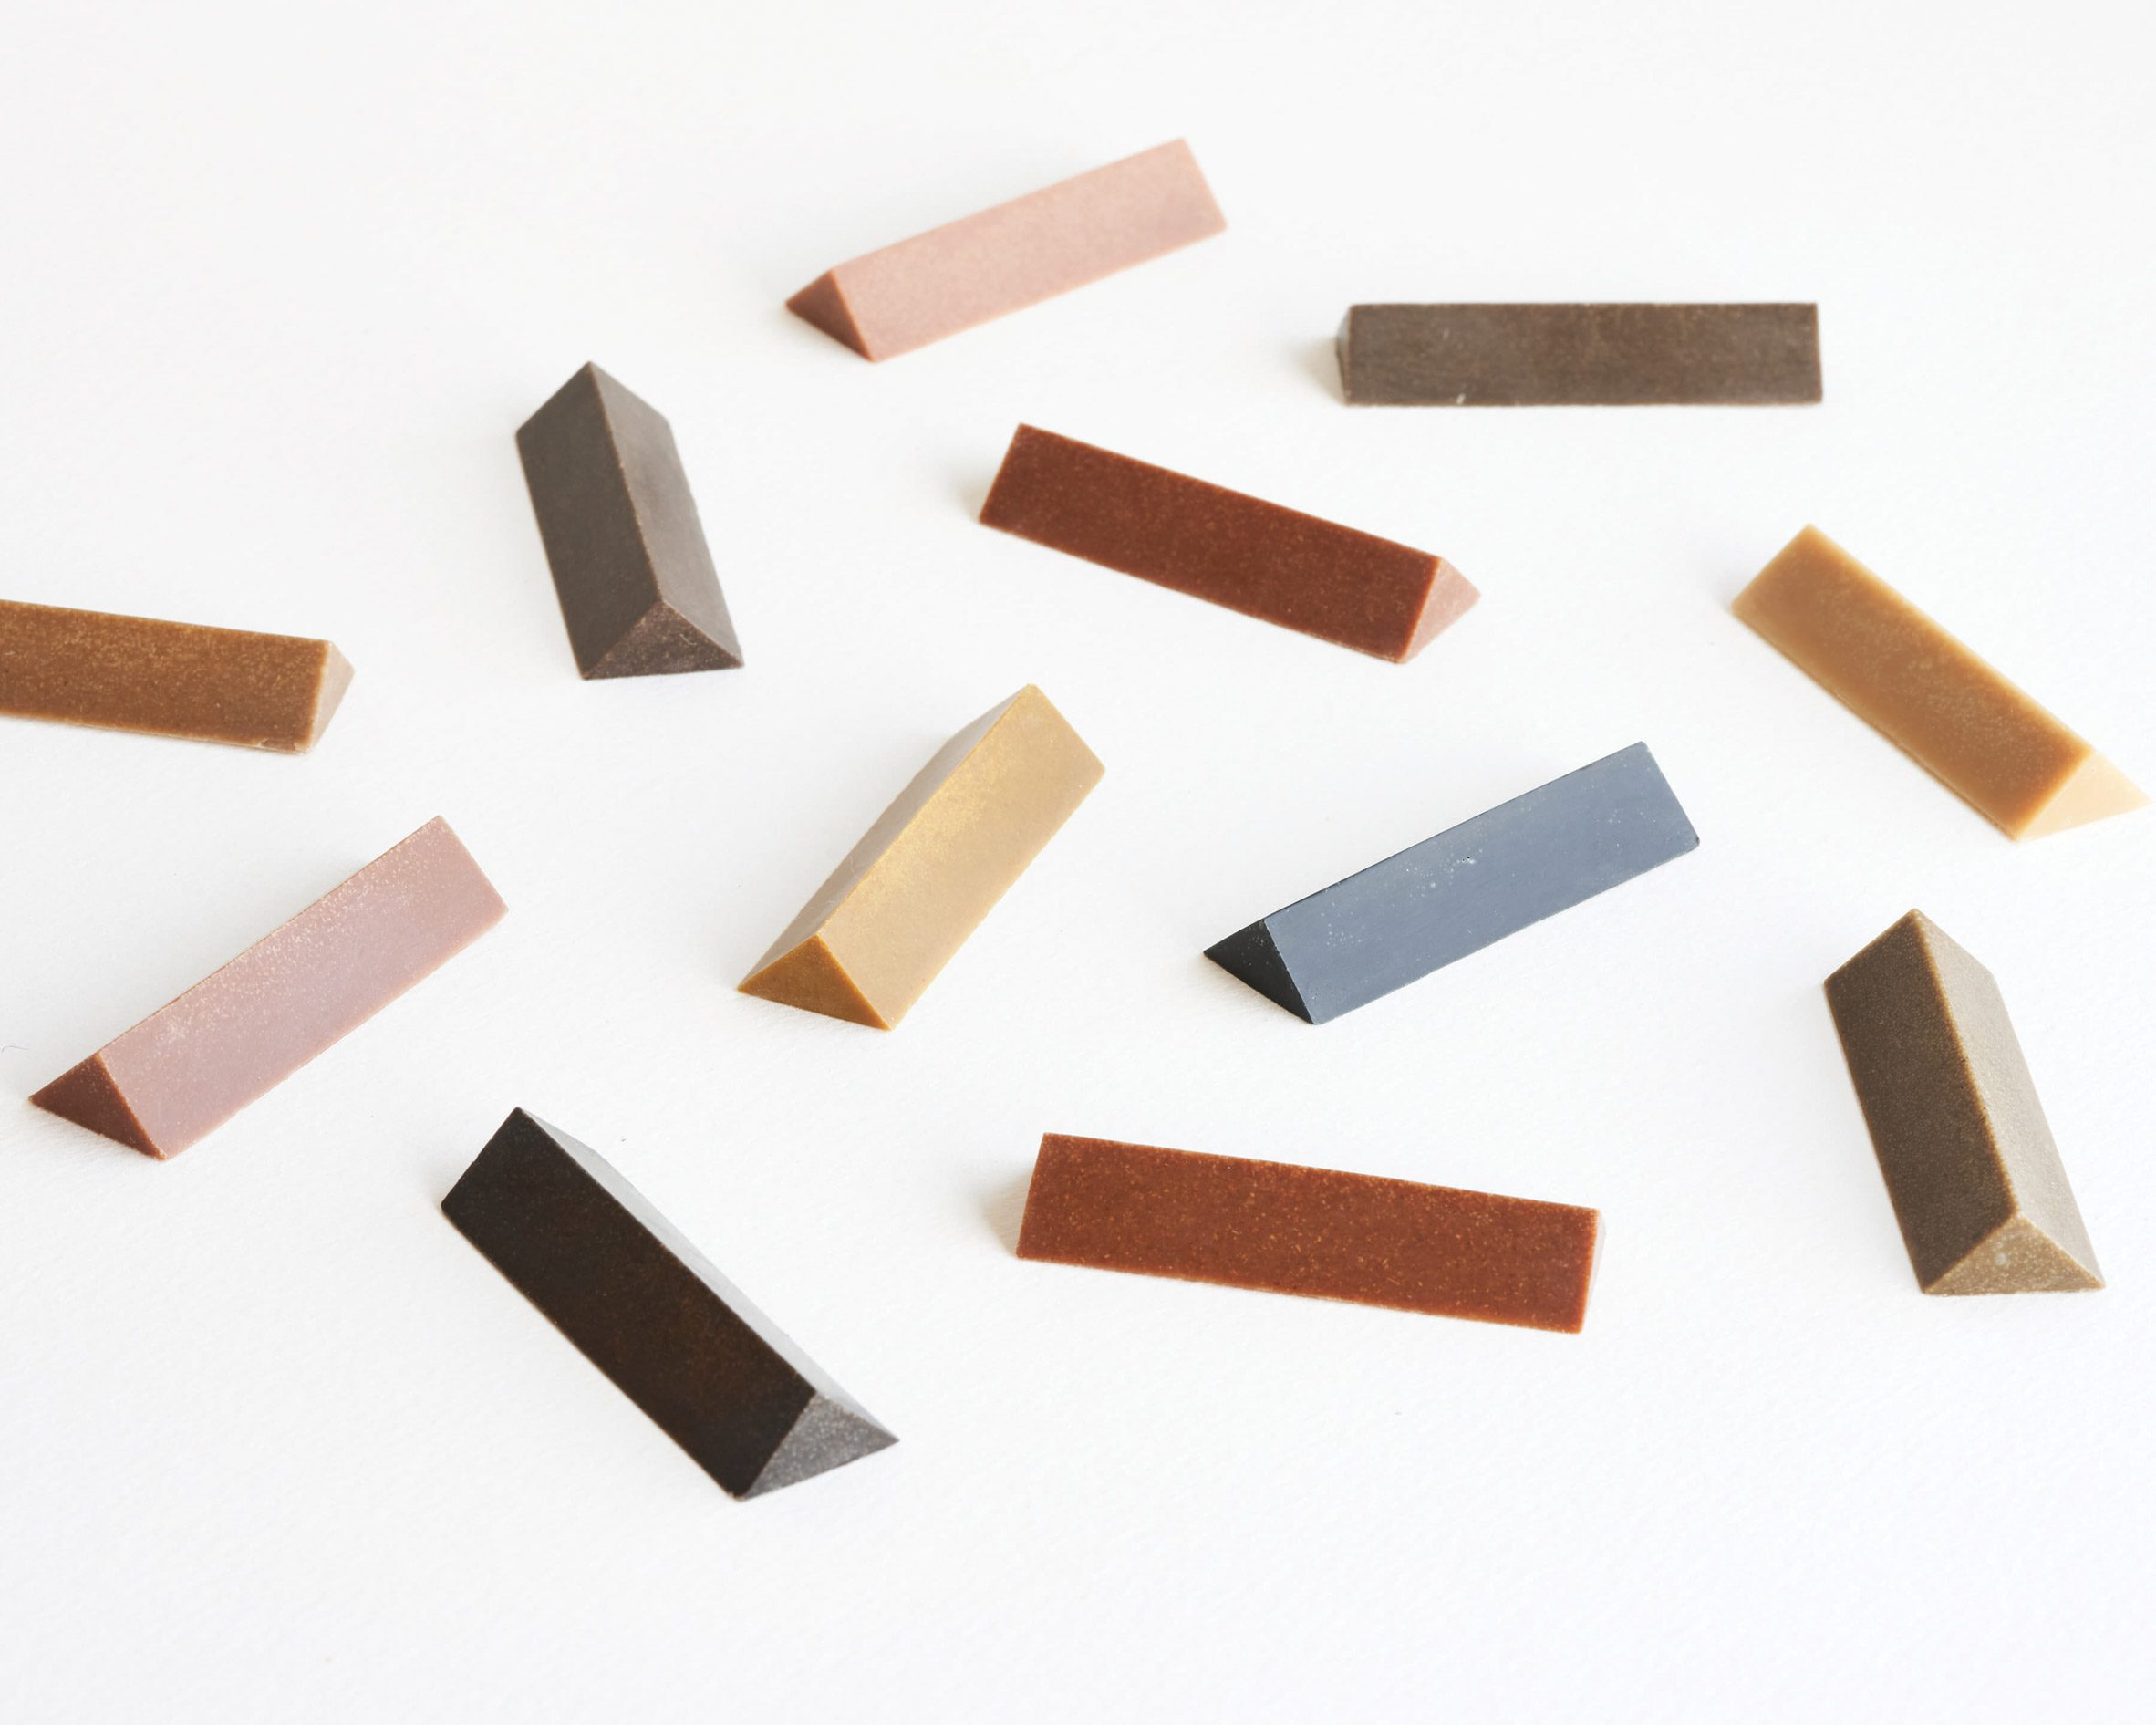 Coloured wooden crayons